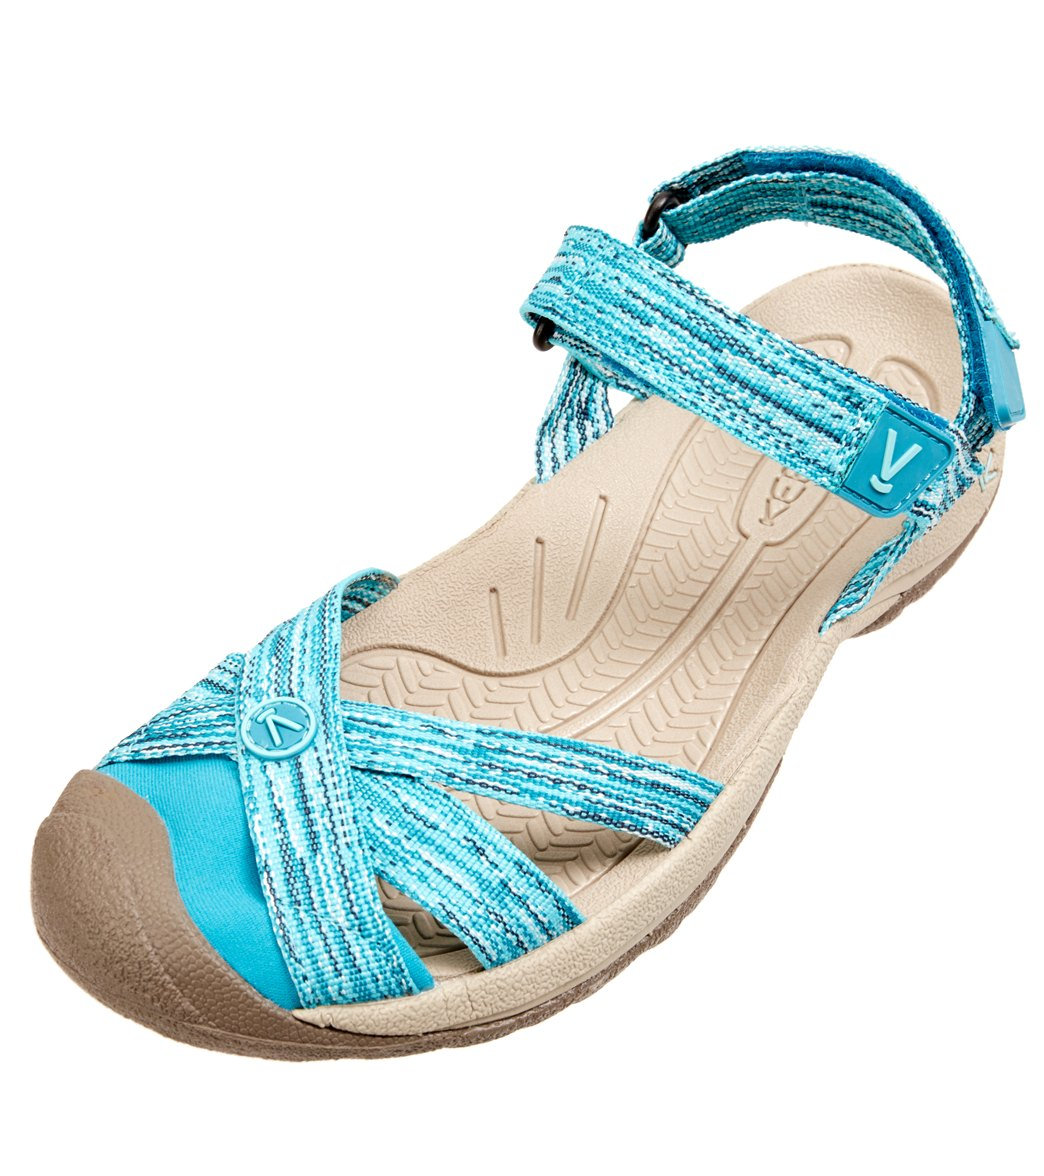 0a8bf0d77e5 Keen Women s Bali Strap Sandal at SwimOutlet.com - Free Shipping